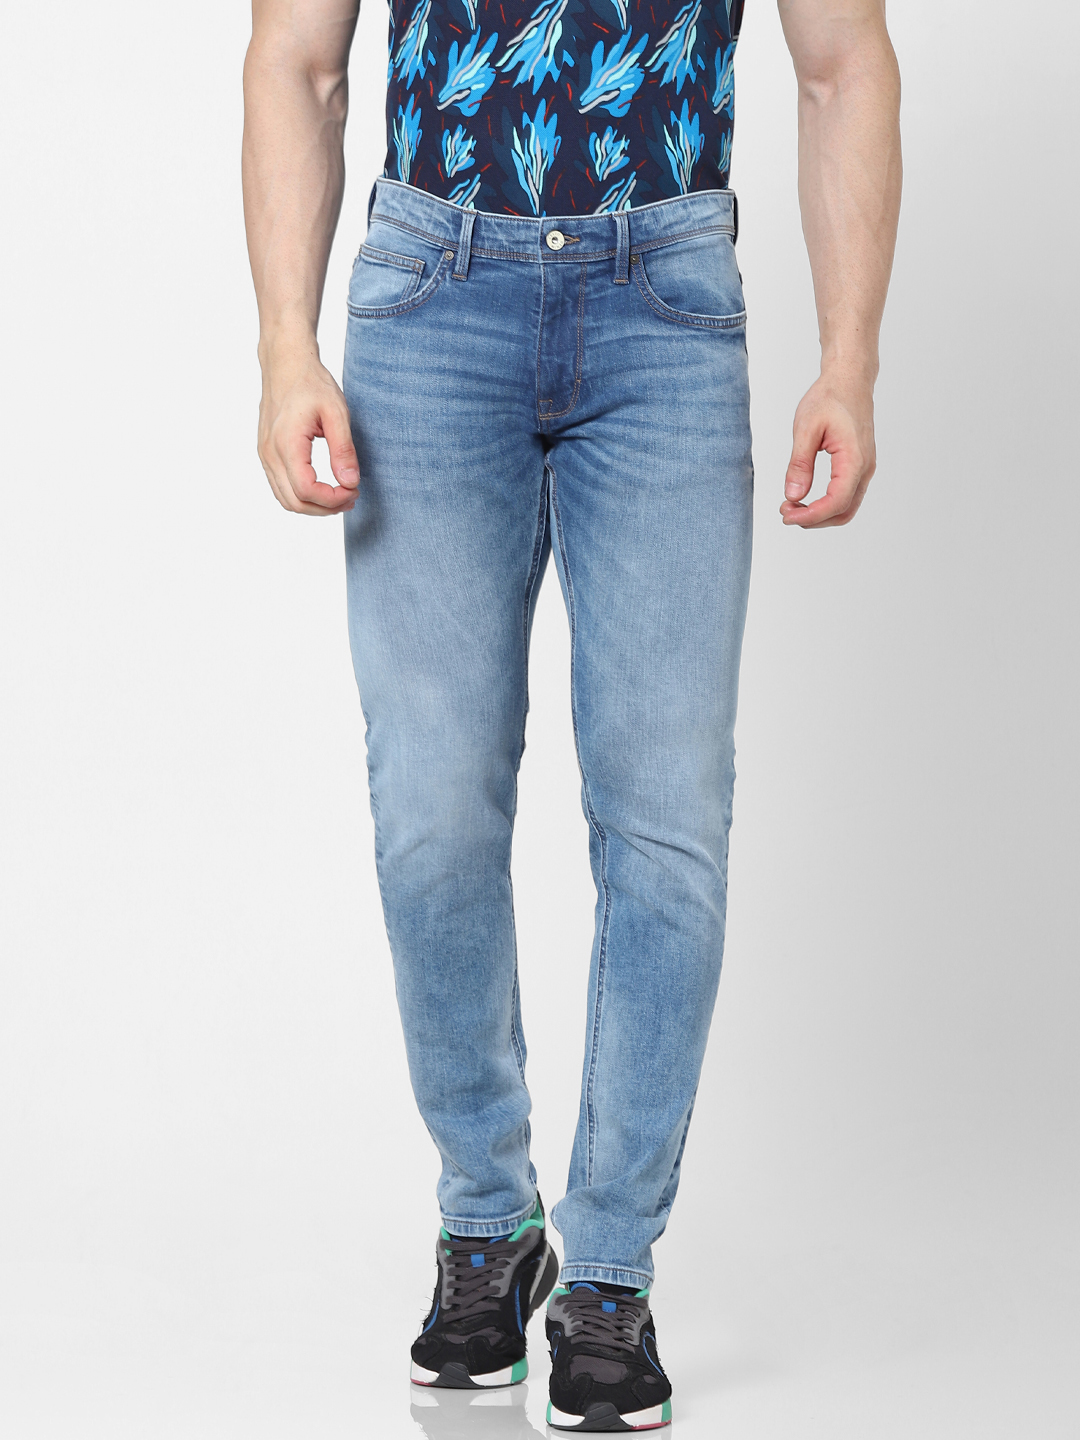 celio | Skinny Fit Double Stone Washed Jeans